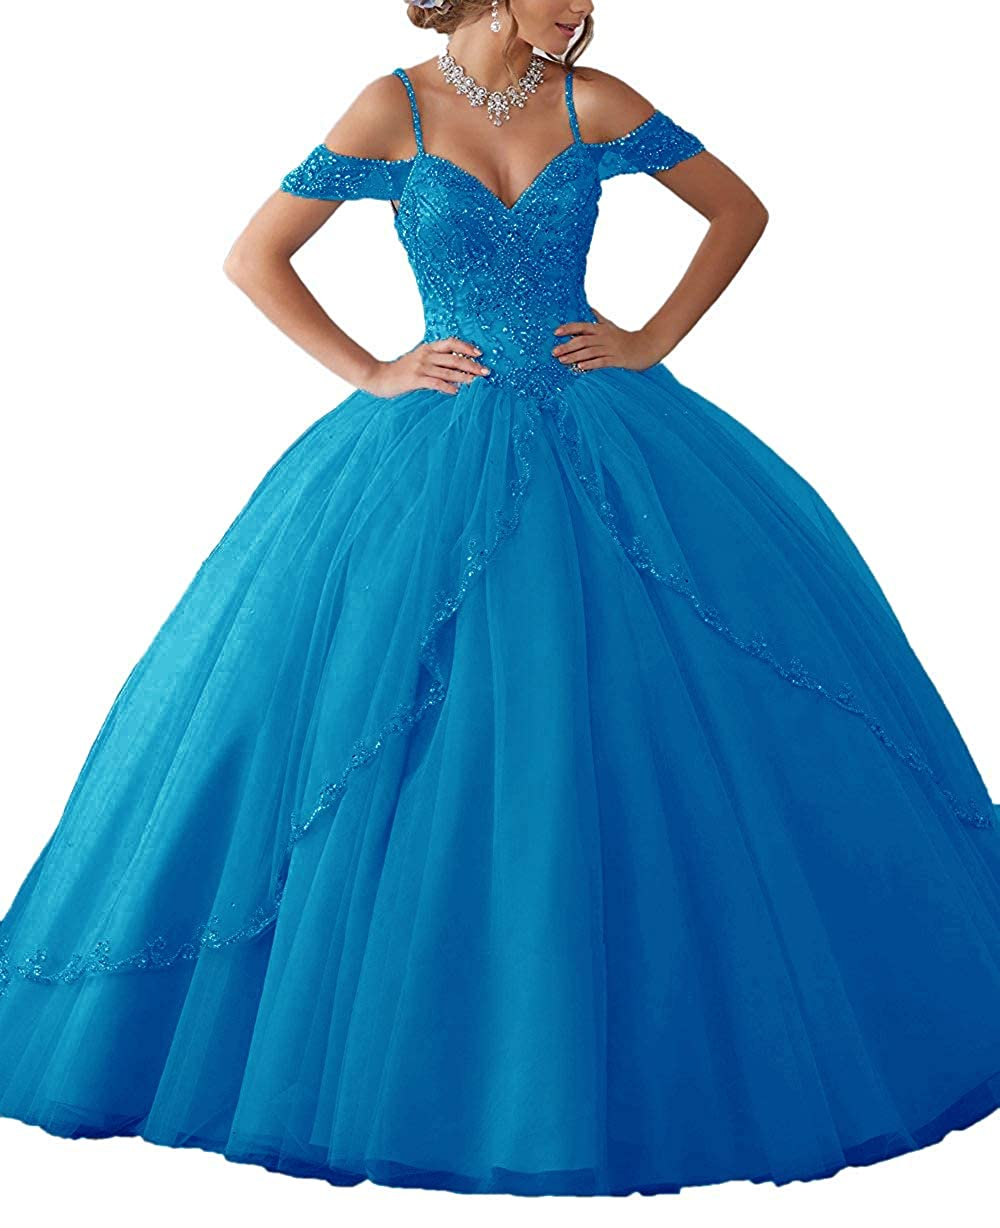 bluee APXPF Women's Cap Sleeves Crystals Beaded Quinceanera Dress Sweet 16 Ball Gown Prom Dress